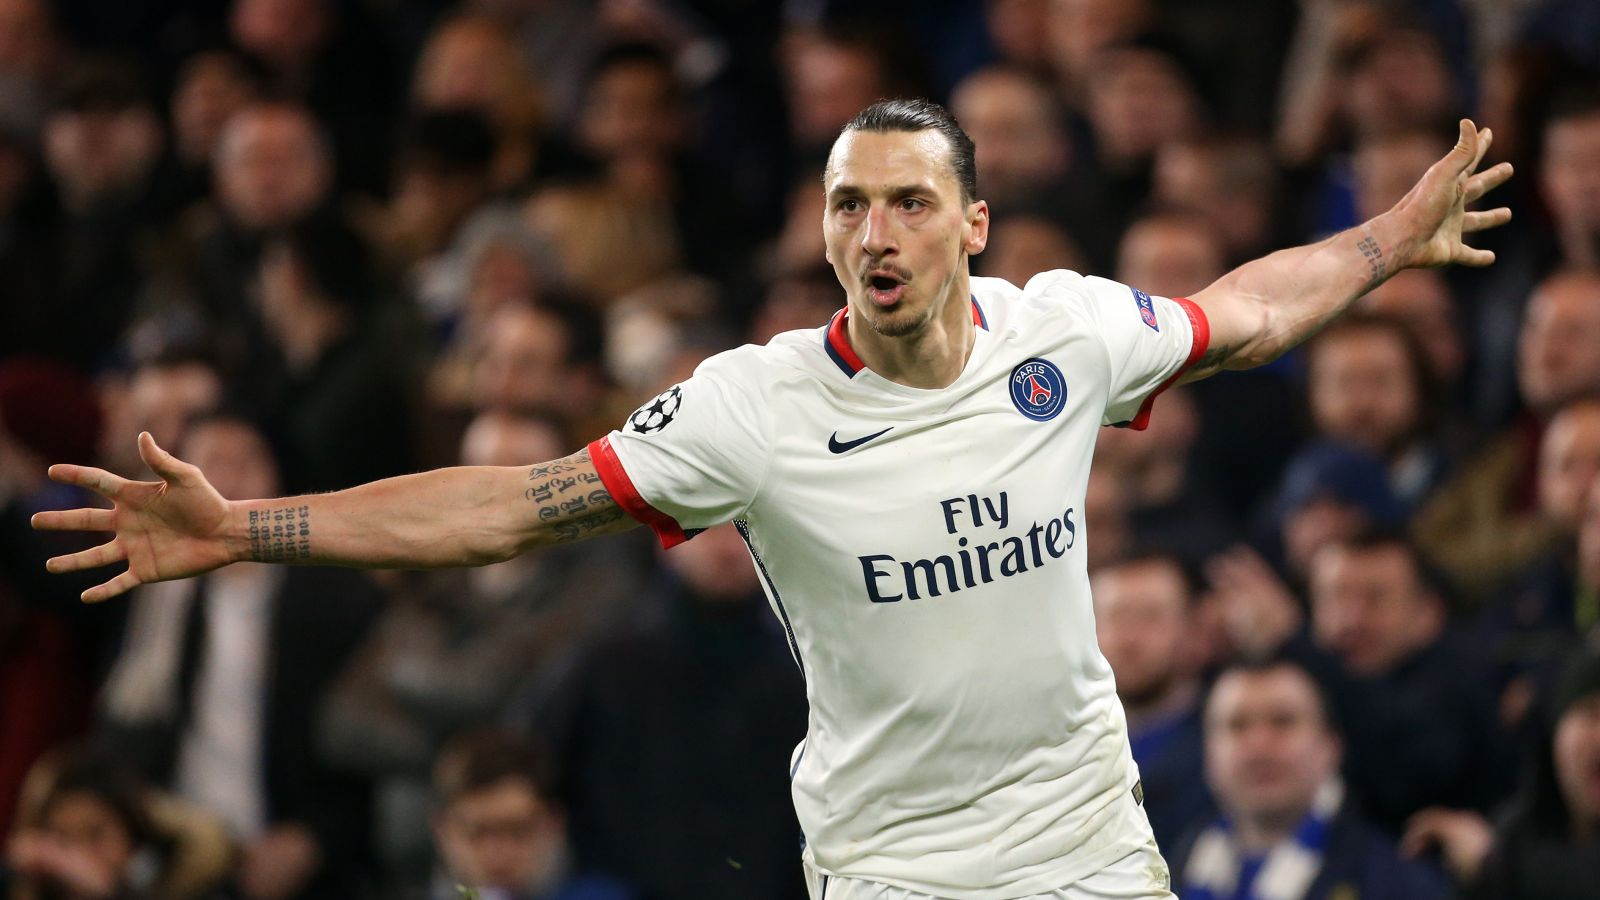 Ibrahimovic remains tight-lipped over PSG future amid speculation